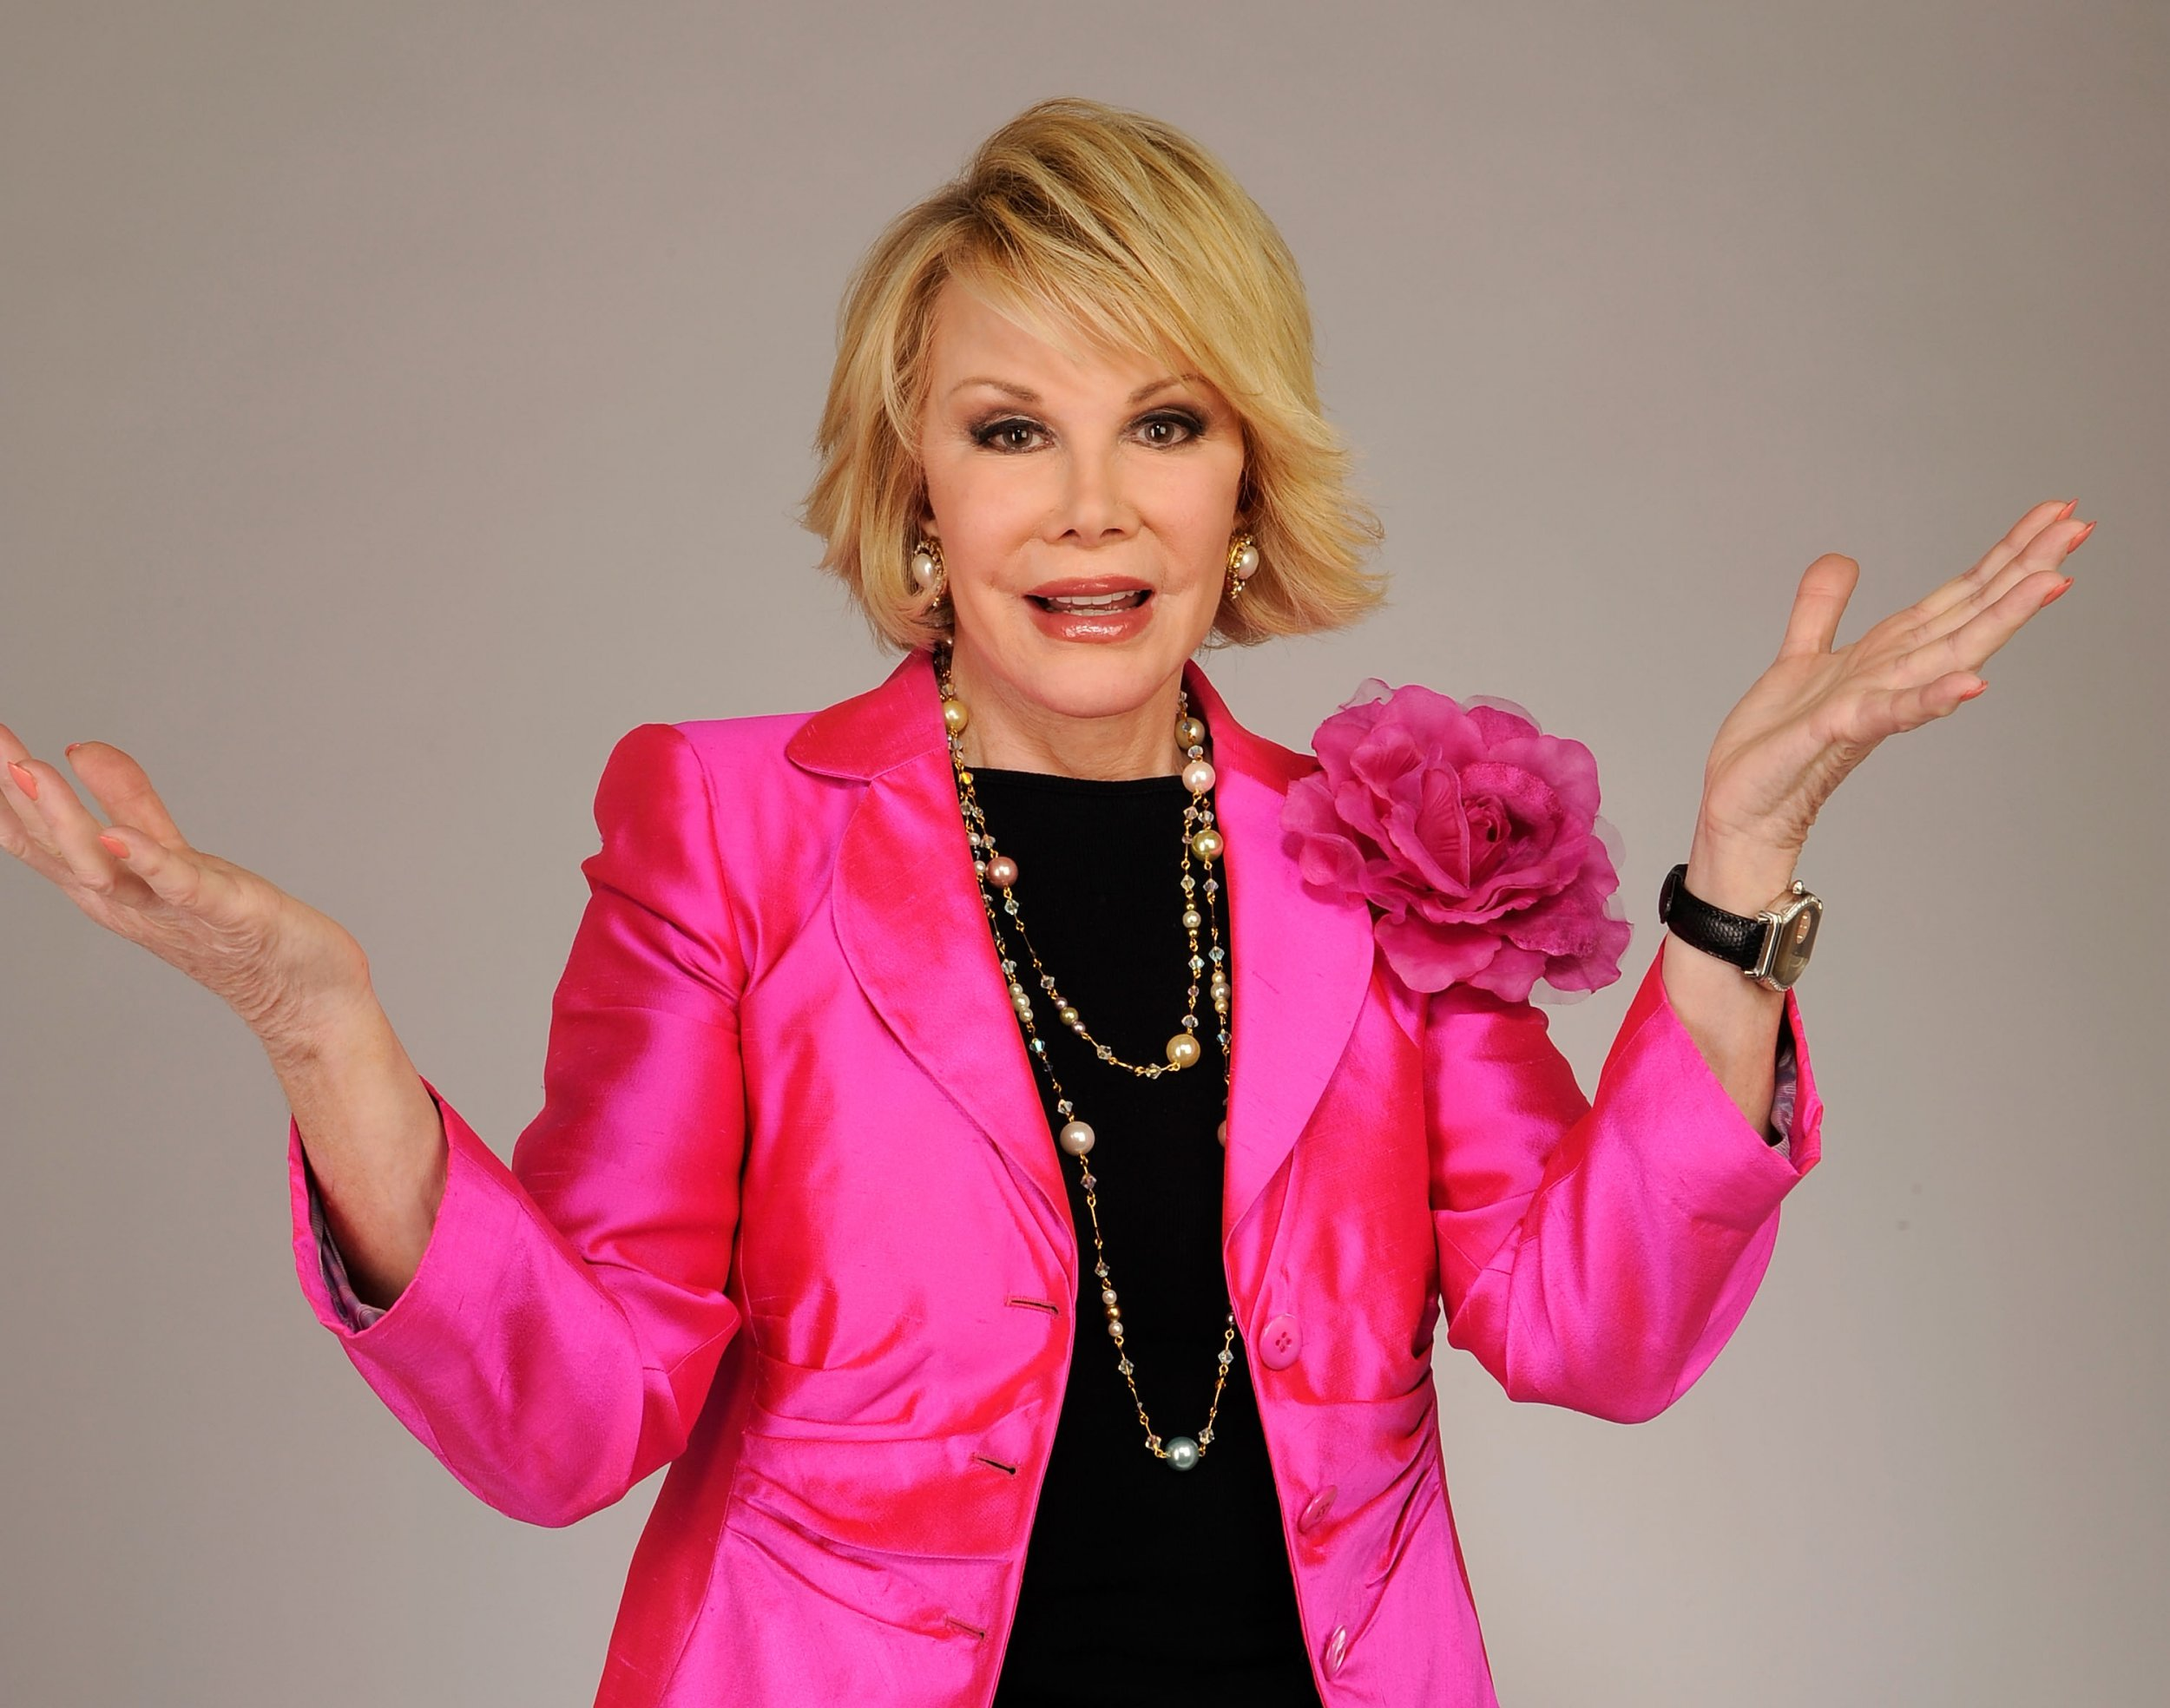 09_04_Joan-Rivers_01